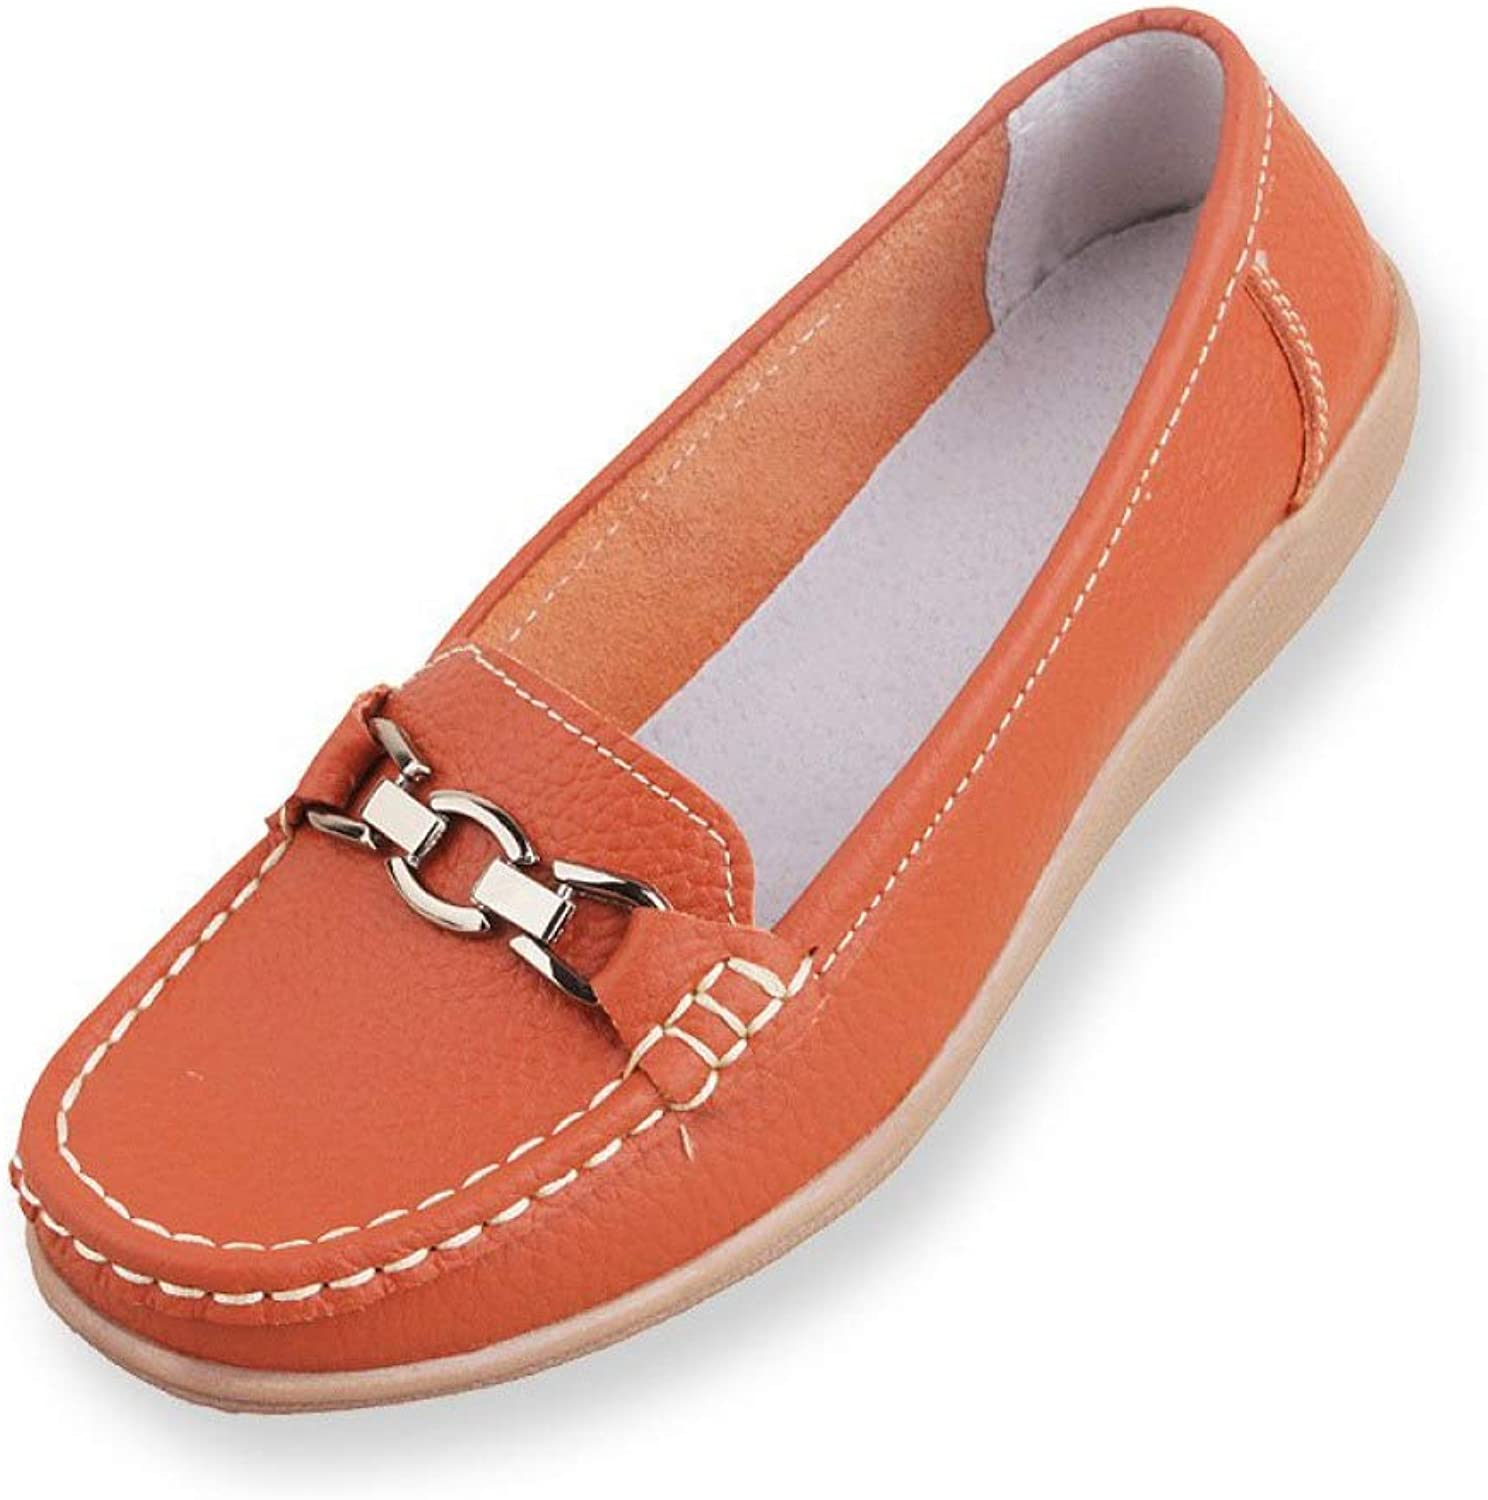 DETAIWIN Women Casual Flat Driving shoes Comfortable Metal Buckle Non Slip Faux Leather Round Toe Walking Loafers